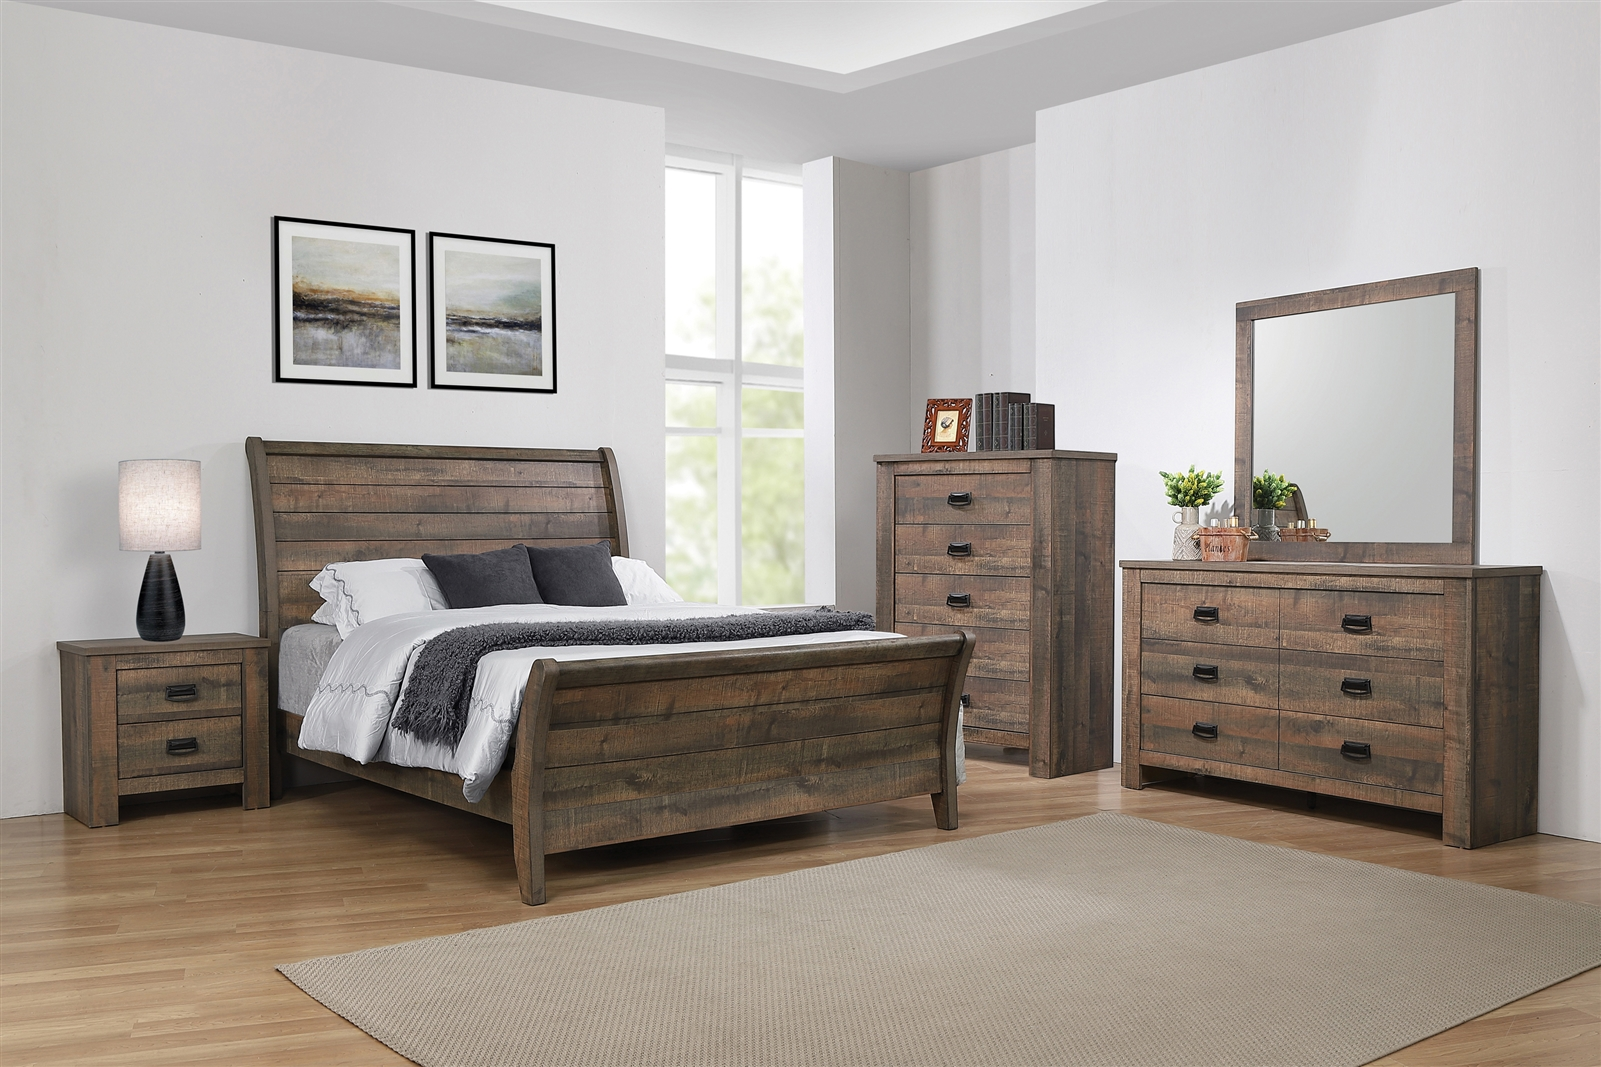 - Rustic Plank Sleigh Bed In Weathered Oak - Coaster 222961